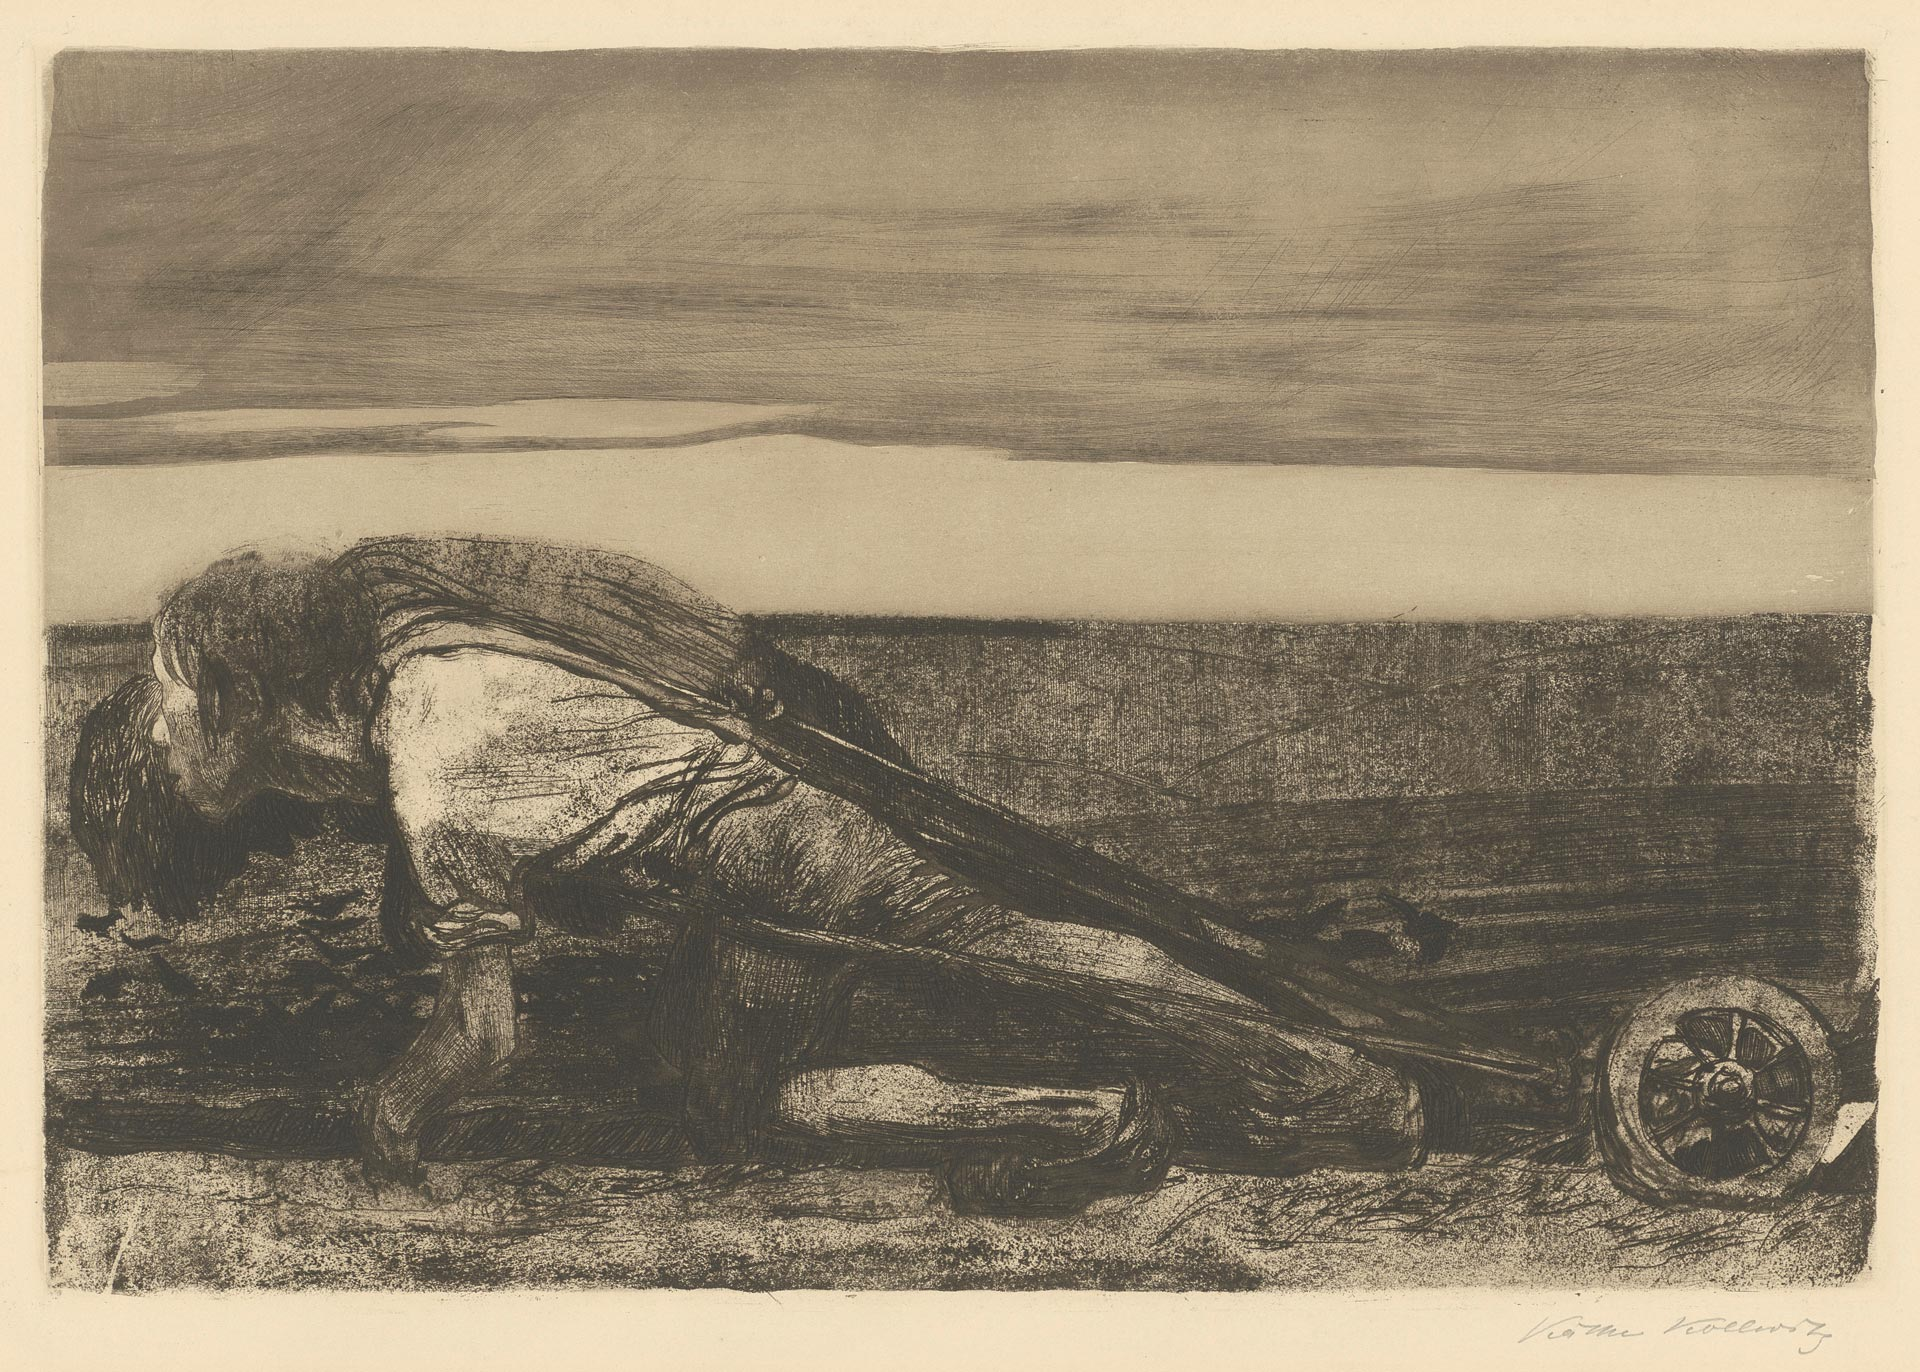 Käthe Kollwitz, The Ploughmen, sheet 1 of the cycle »Peasants War«, 1907, line etching, drypoint, aquatint, reservage, sandpaper, needle bundle and soft ground with imprint of Ziegler transfer paper, Kn 99 VIII b, Cologne Kollwitz Collection © Käthe Kollwitz Museum Köln